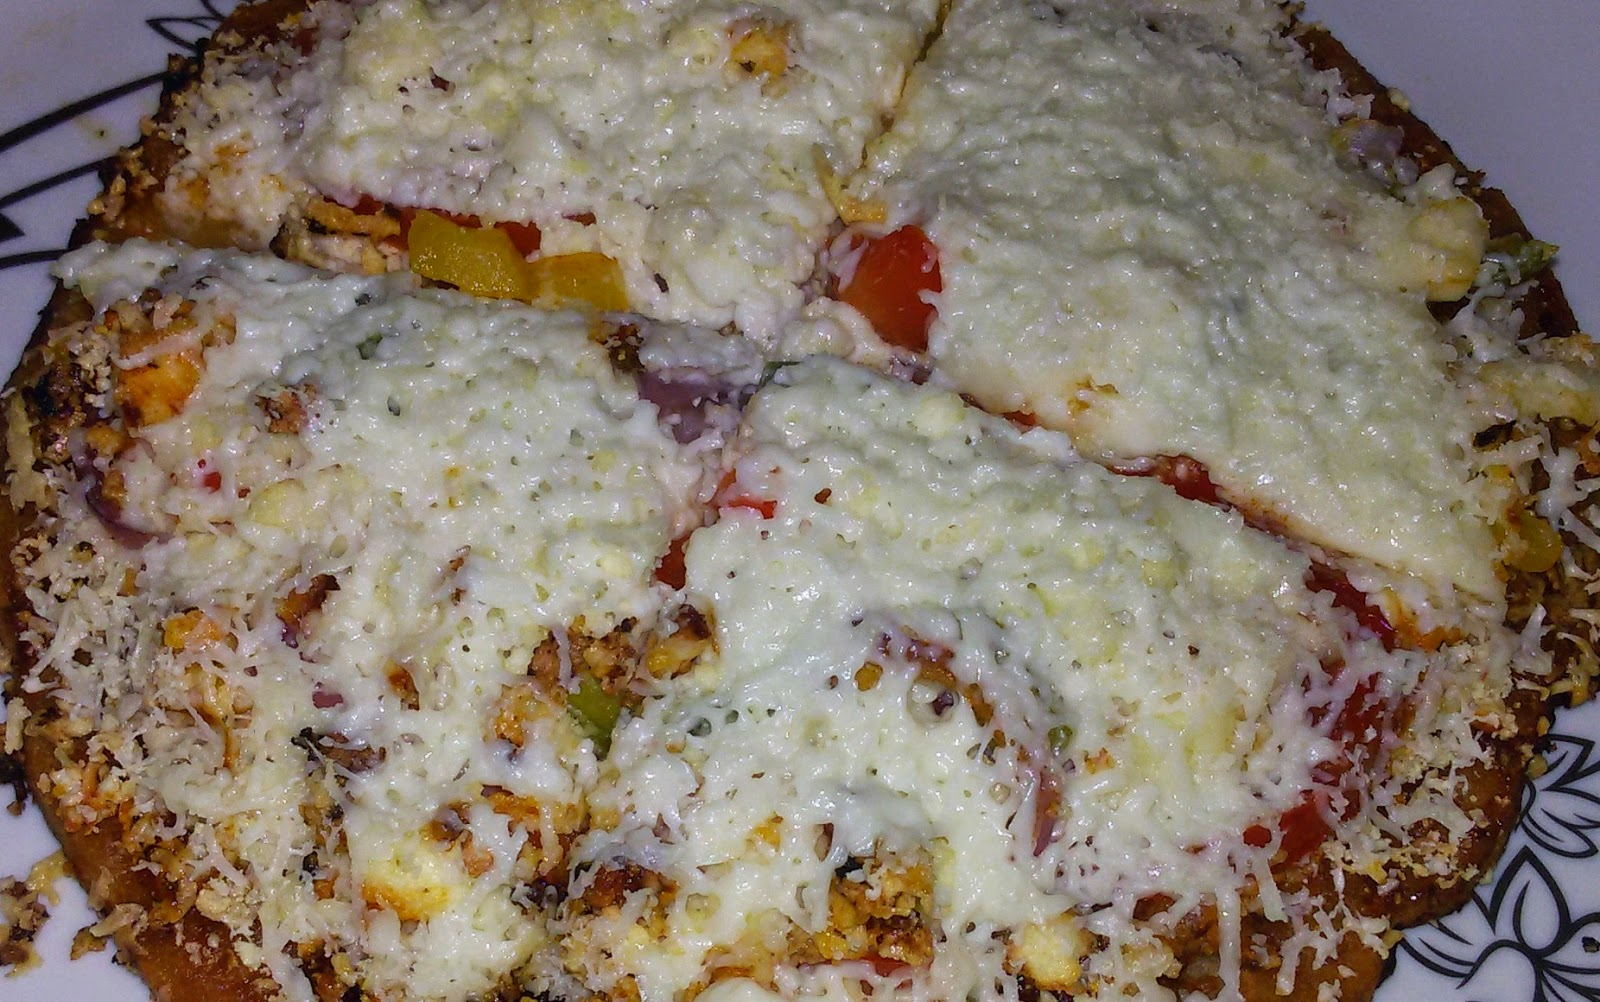 bananaleaf recipes pizza without oven yeast maida instant pizza